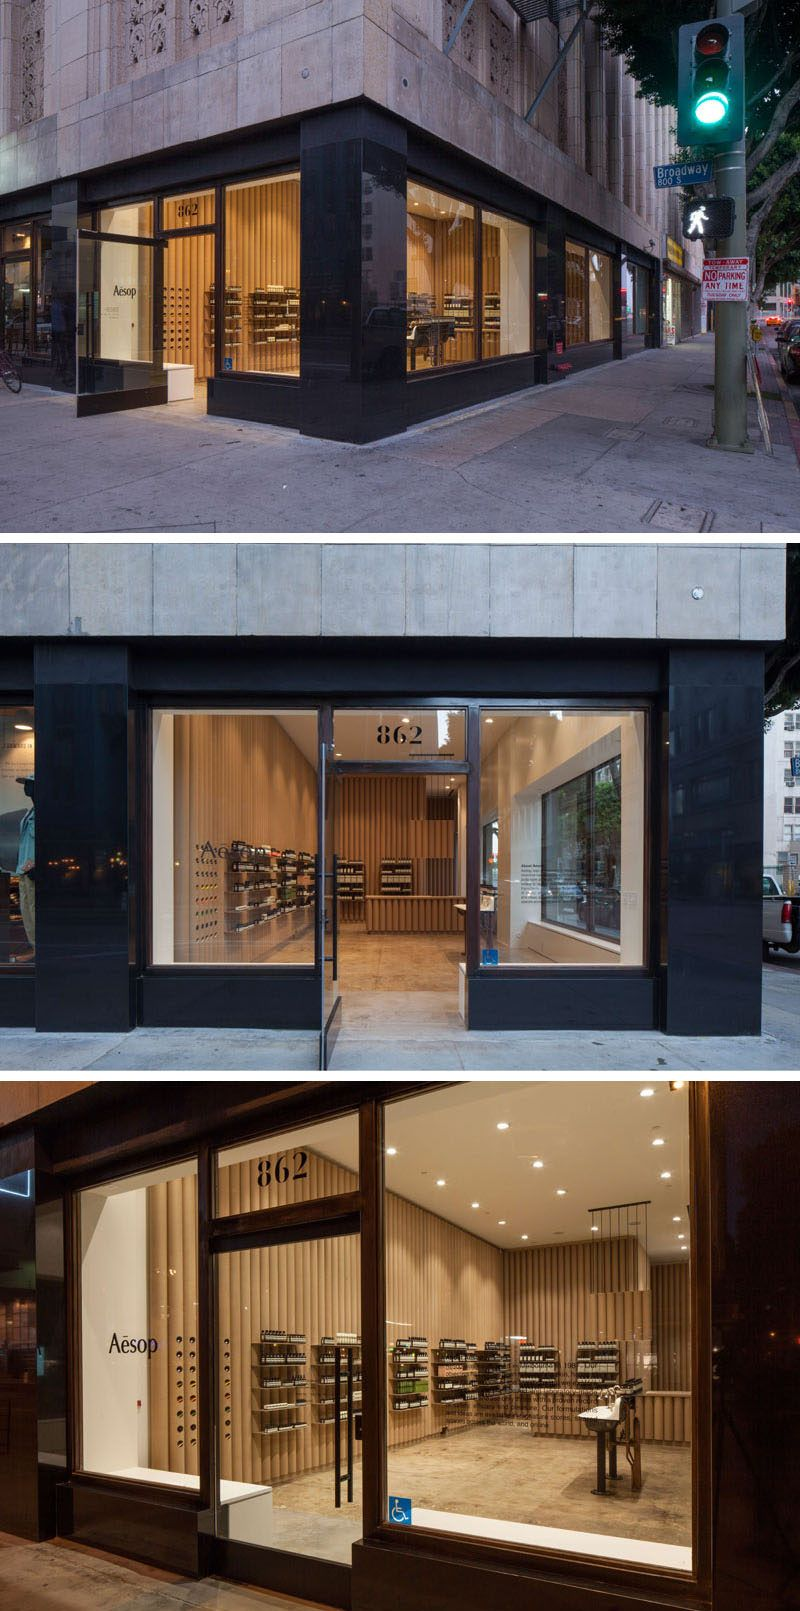 Cardboard Tubes Have Been Used Throughout This Aesop Store In Downtown LA Interior DesignArchitecture